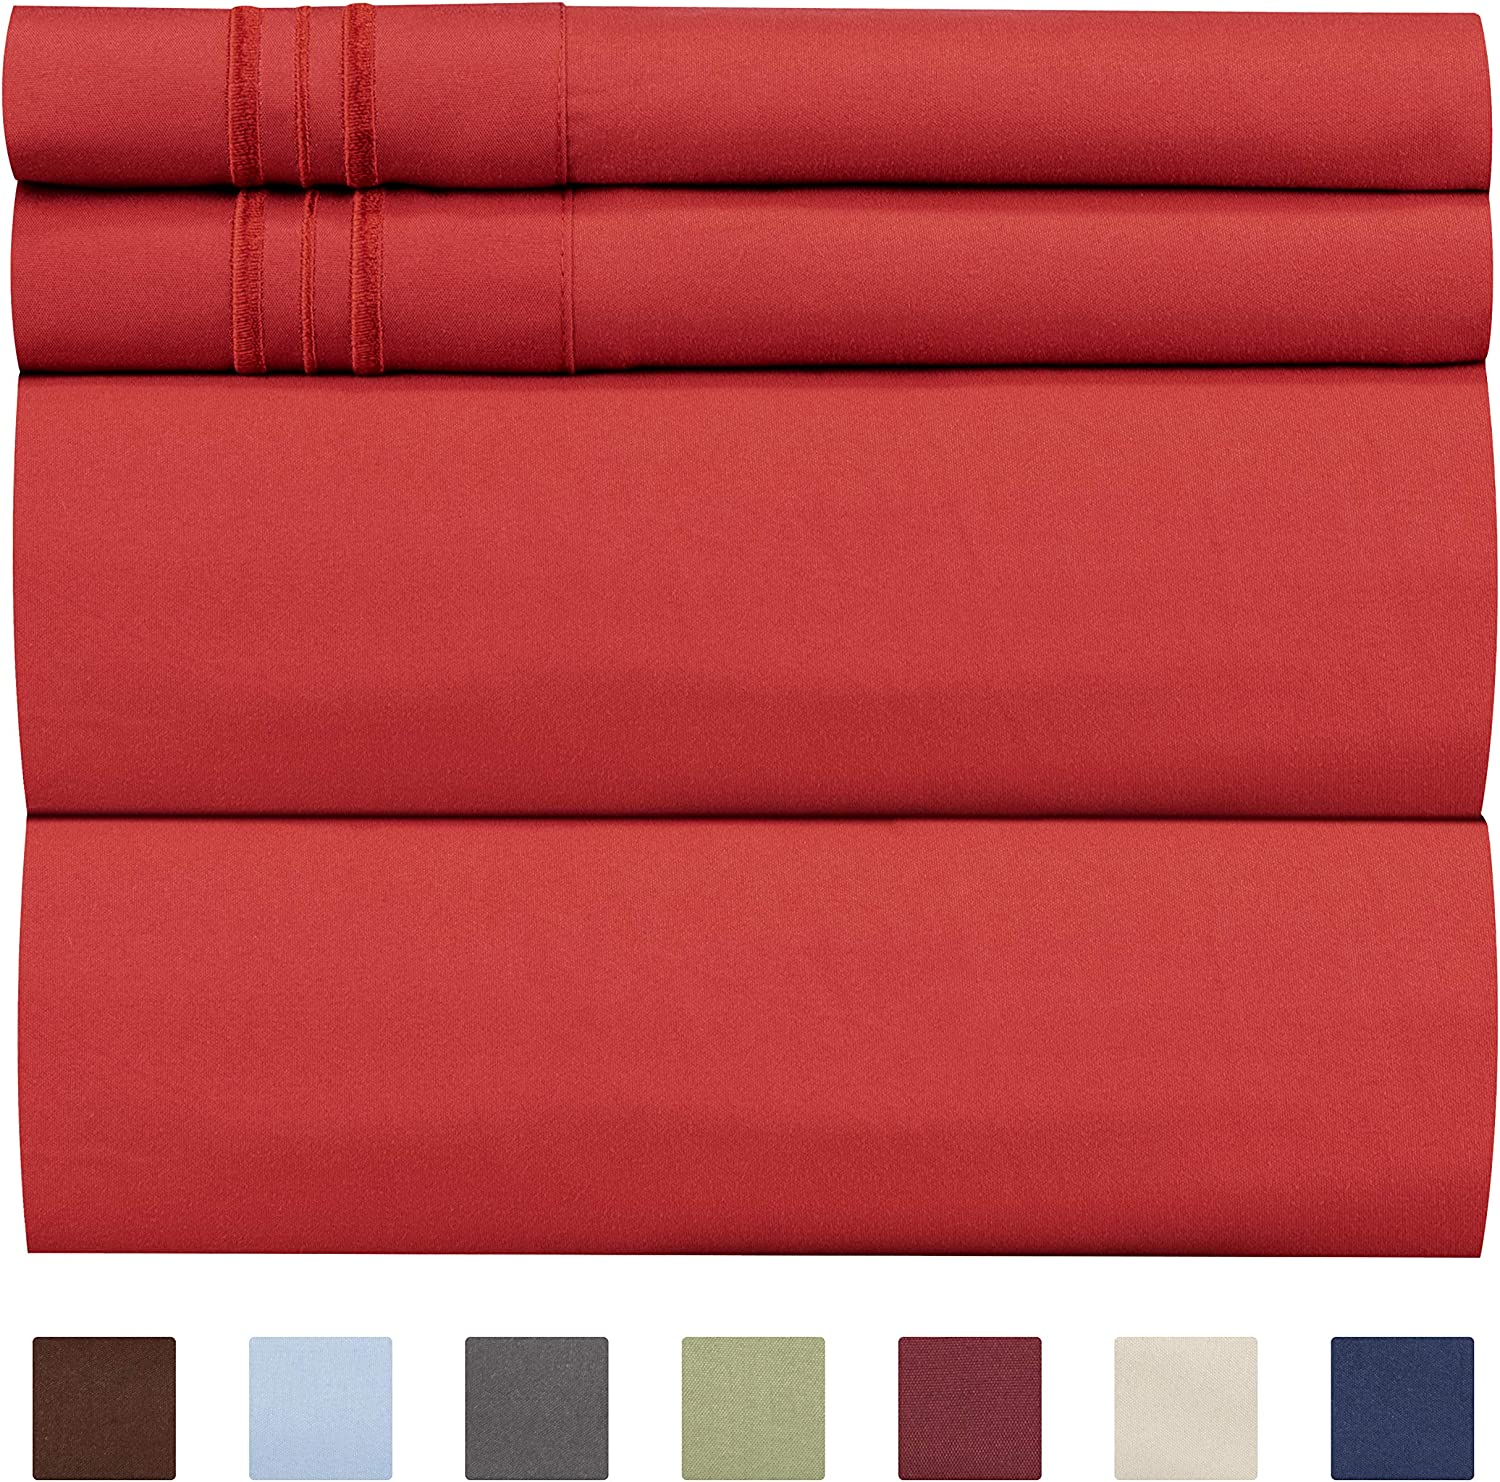 King Size Sheet Set - 4 Piece - Hotel Luxury Bed Sheets - Extra Soft - Deep Pockets - Easy Fit - Breathable & Cooling Sheets - Wrinkle Free - Comfy – Red Bed Sheets - Kings Sheets – 4 PC